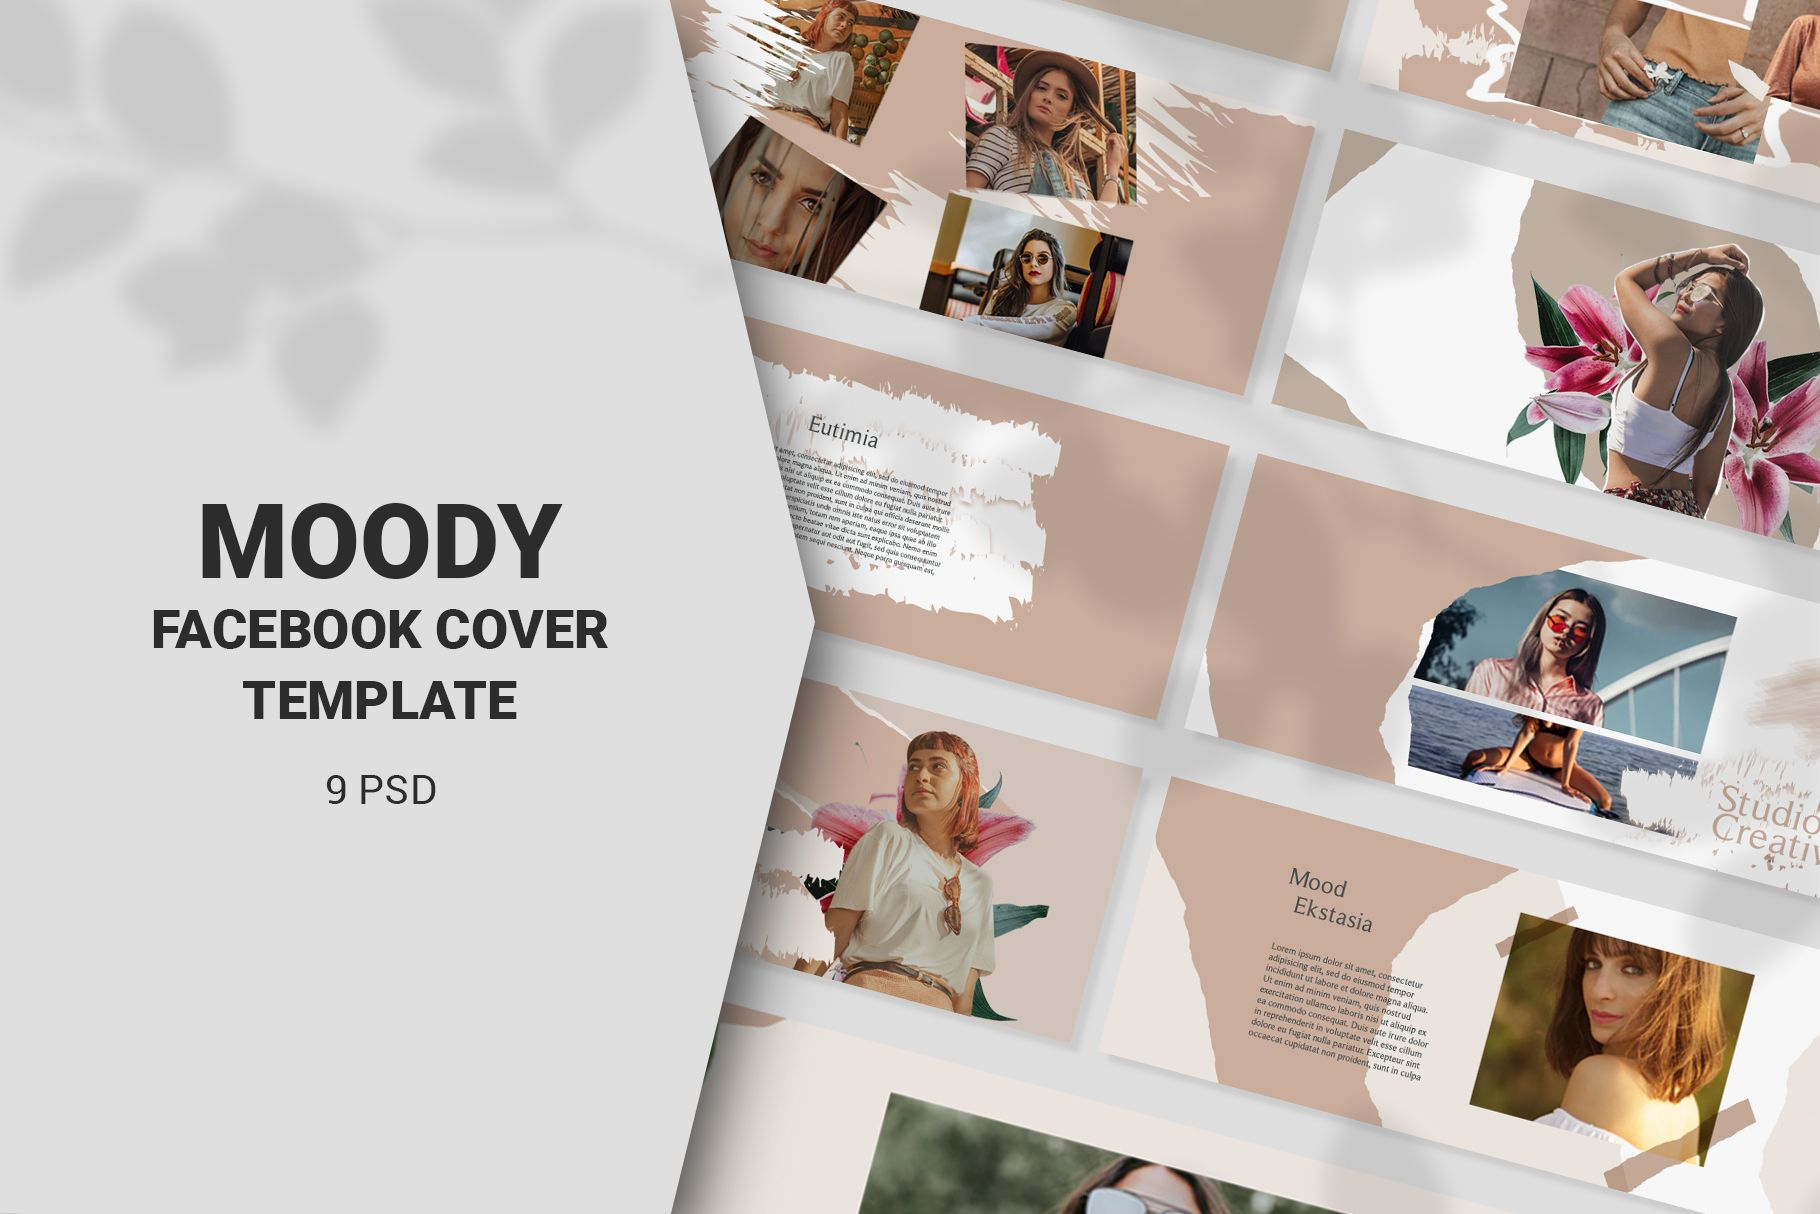 Moody Facebook Cover Templates 434915 Web Elements Design Bundles Facebook Cover Template Cover Template Facebook Cover